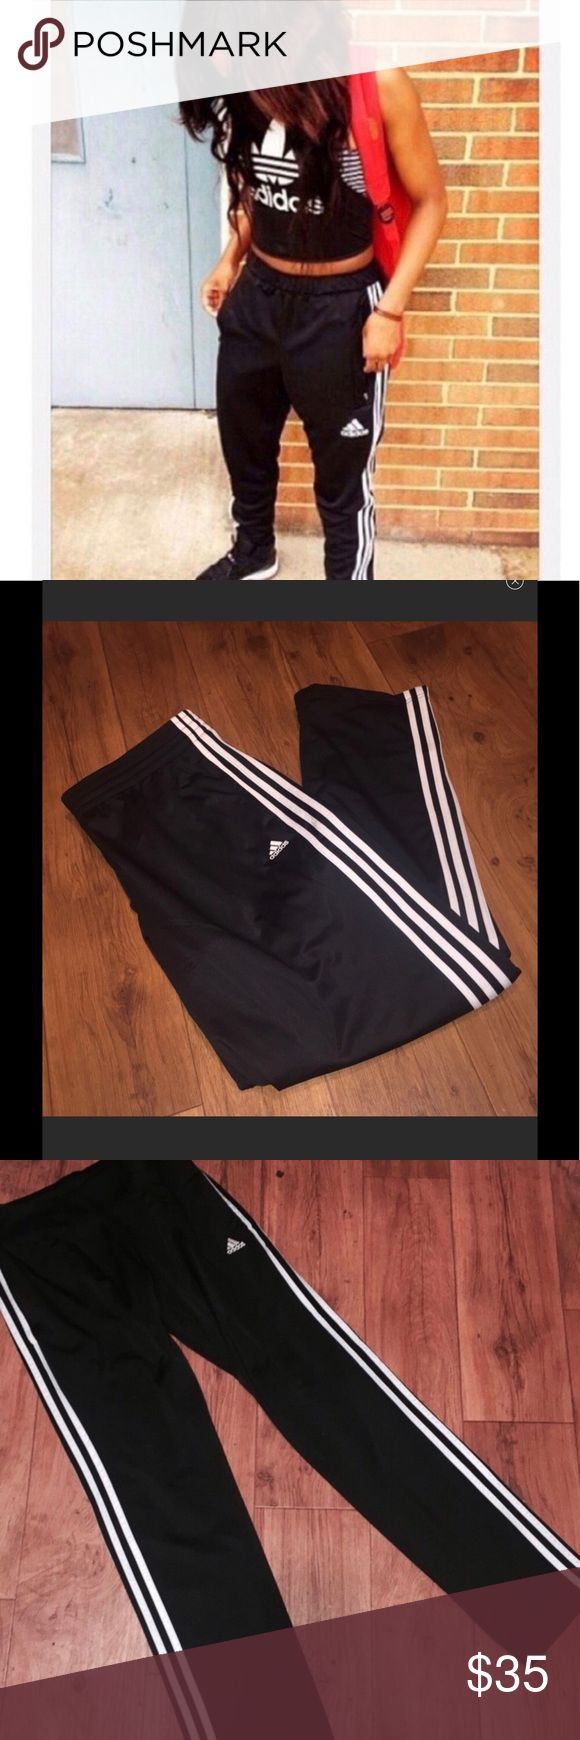 Adidas Superstar Athletic Track Pants Adidas Superstar Athletic Track Pants  - Black with white racing stripes down sides. Vintage 90's style.  Logo on front - Size Womans small  - cotton blend material - sweatpants, super comfortable  - loose, slouchy fit, strait legs, full length Perfect new condition - NWOT - purchased from PACSUN TAGS: #pacsun #athletic #90s #gym adidas Pants Track Pants & Joggers